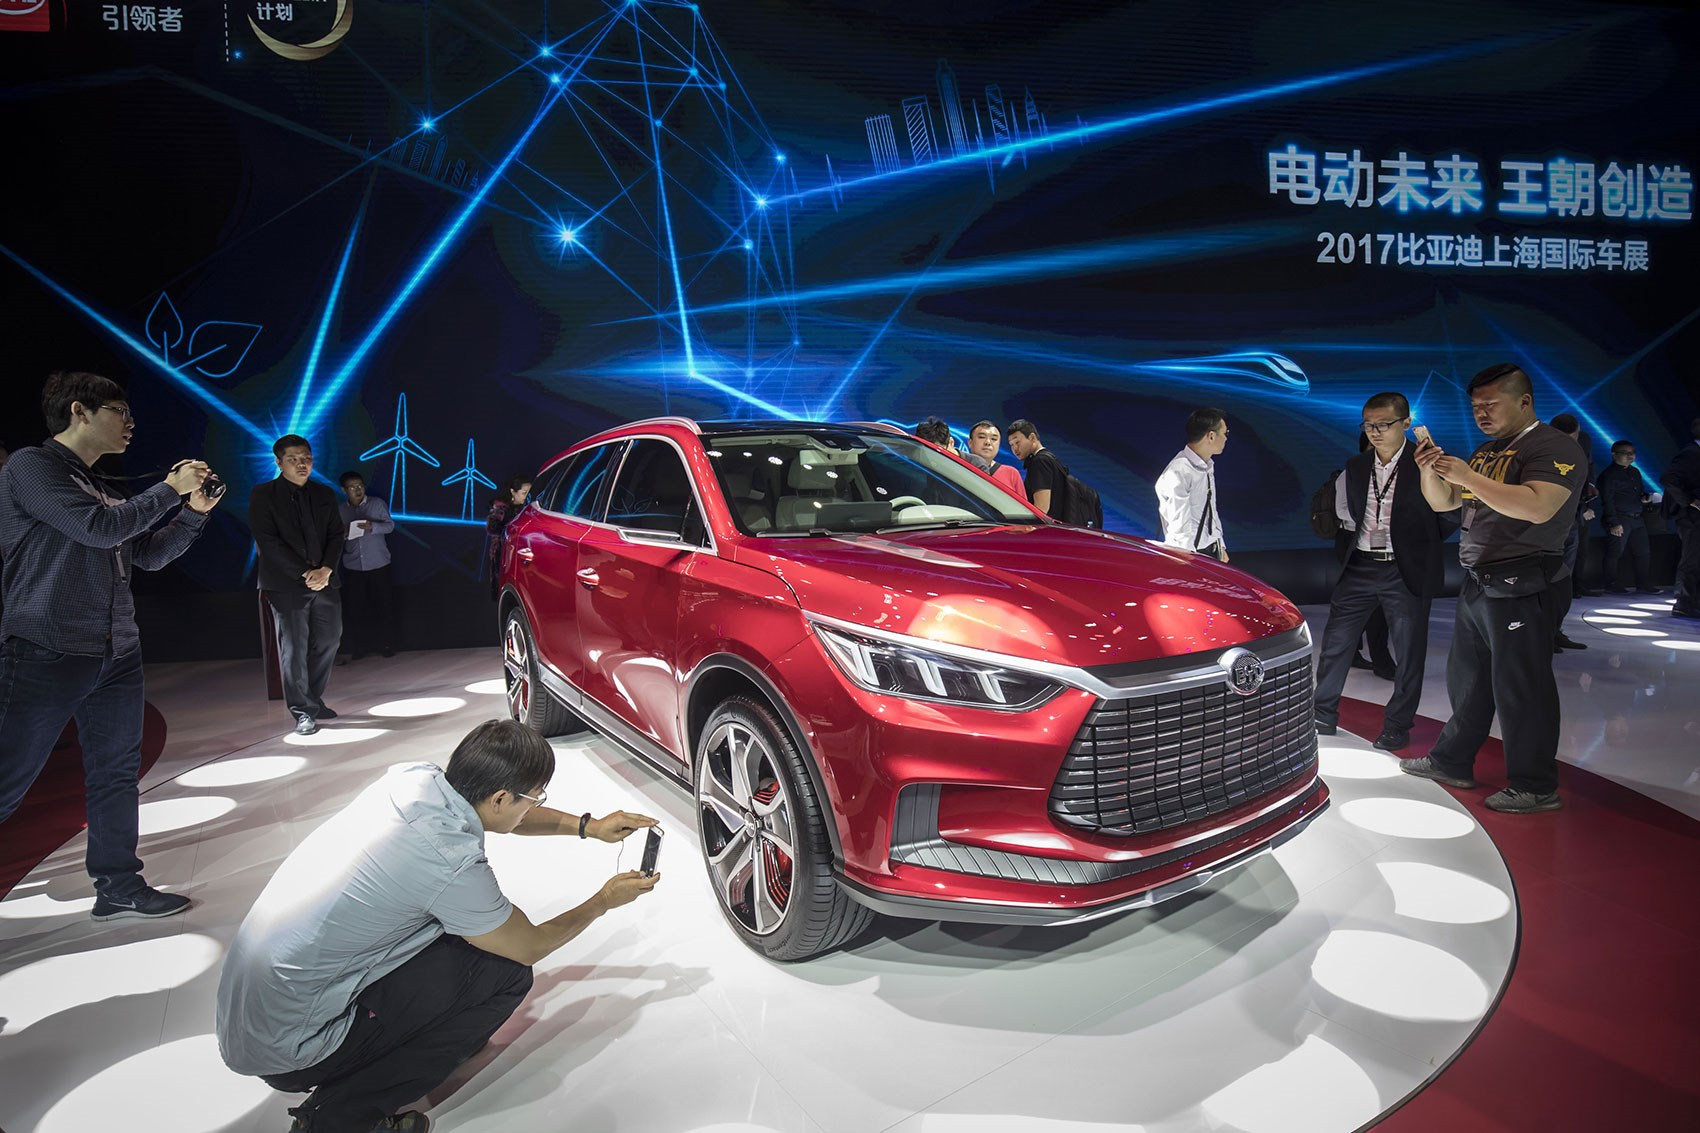 Shanghai motor show 2017 review gavin green at auto shanghai by car magazine - Shanghai auto show ...